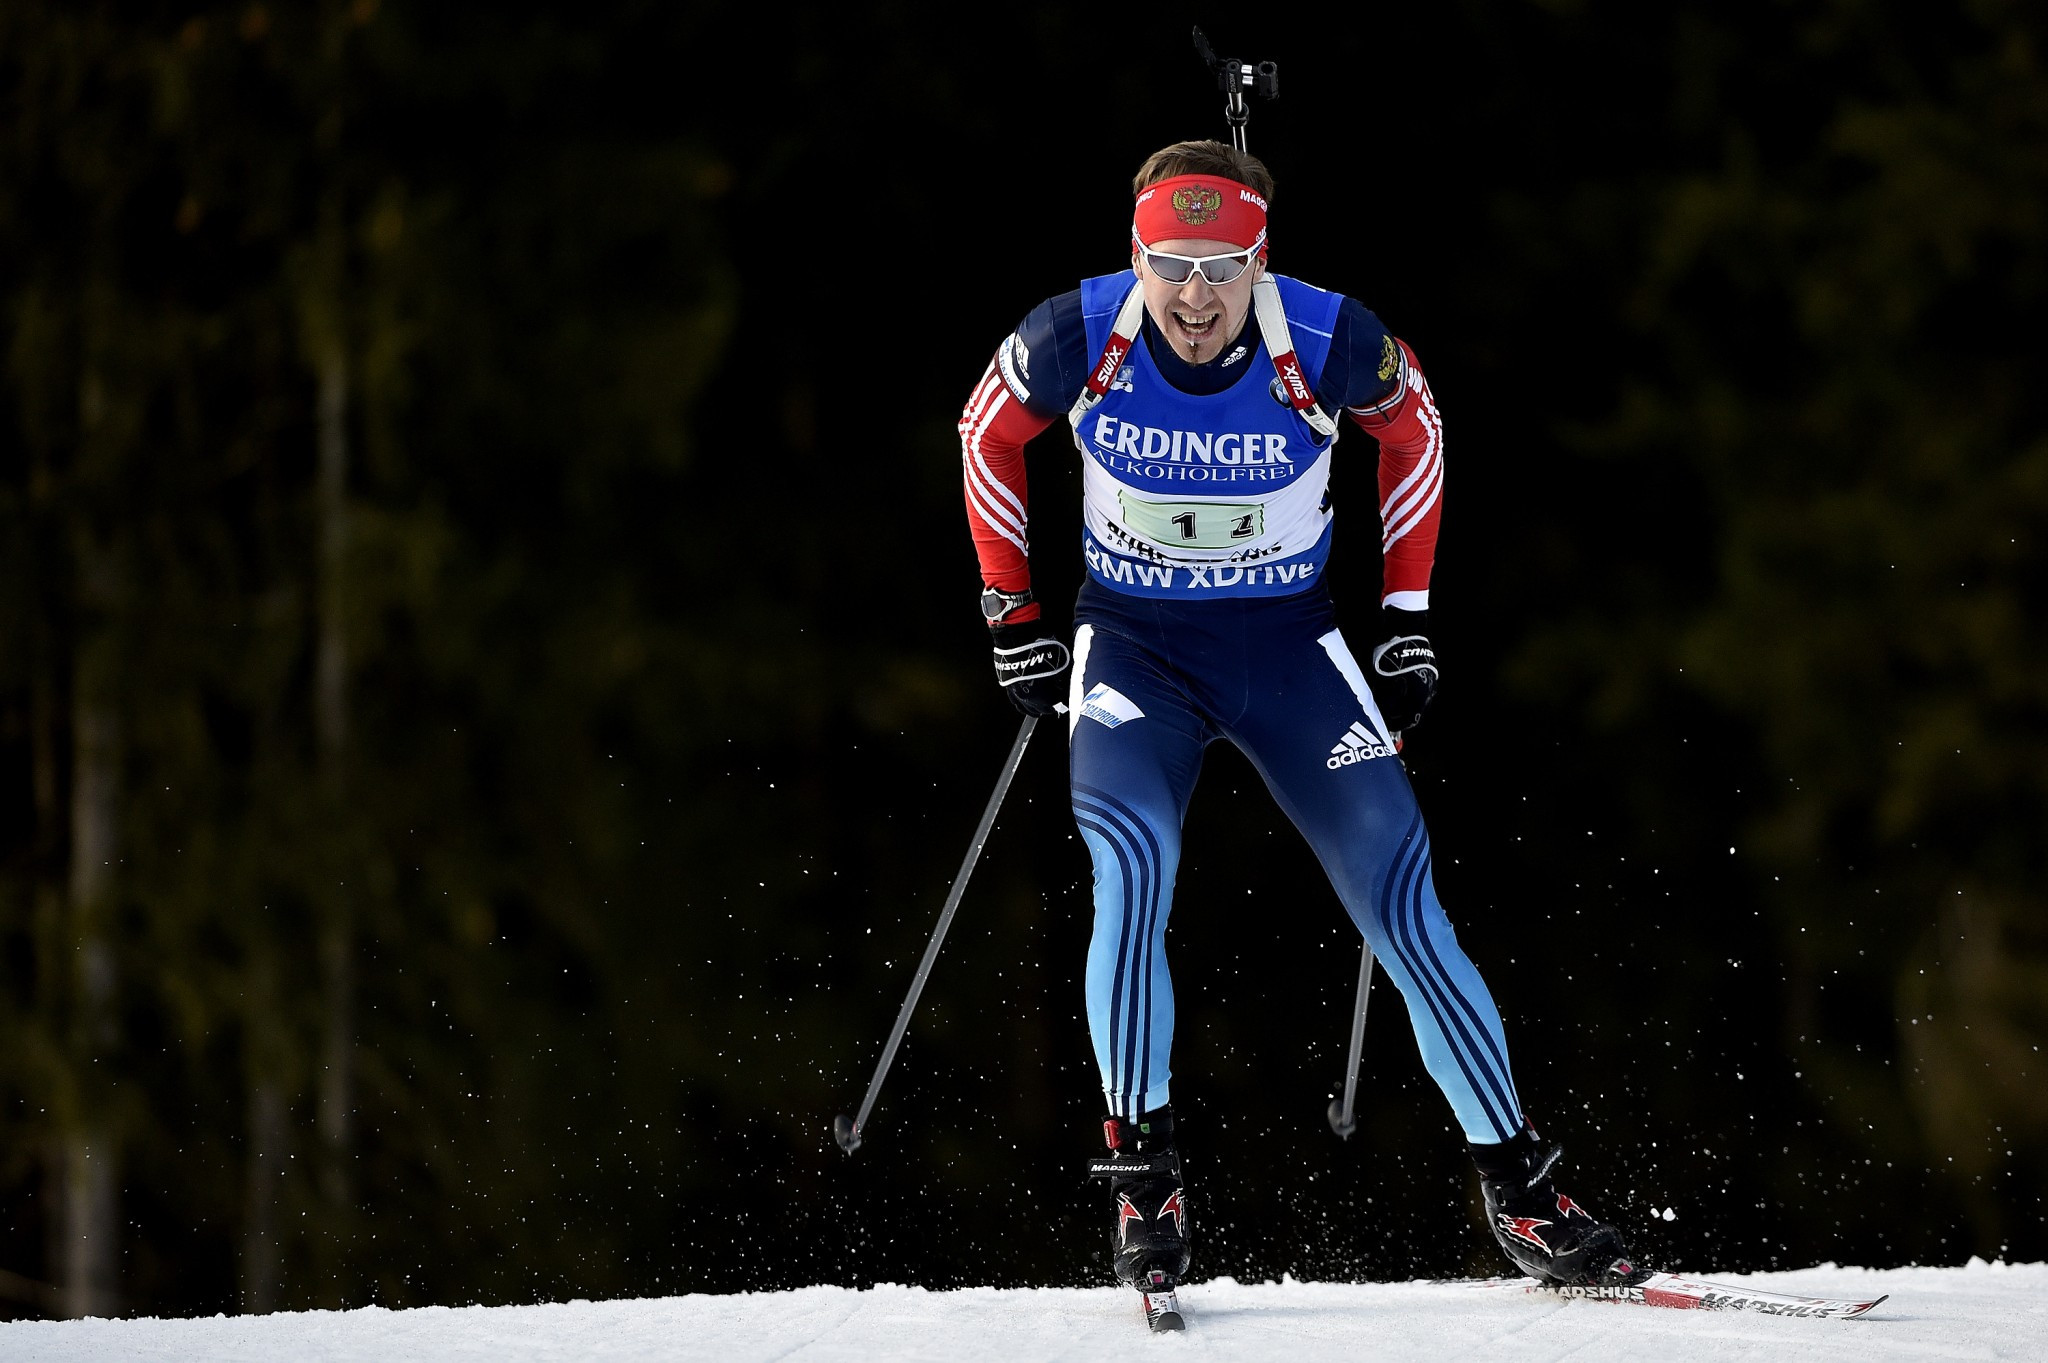 Timofey Lapshin is among several Russian biathletes given South Korean passports for Pyeongchang 2018 ©Getty Images